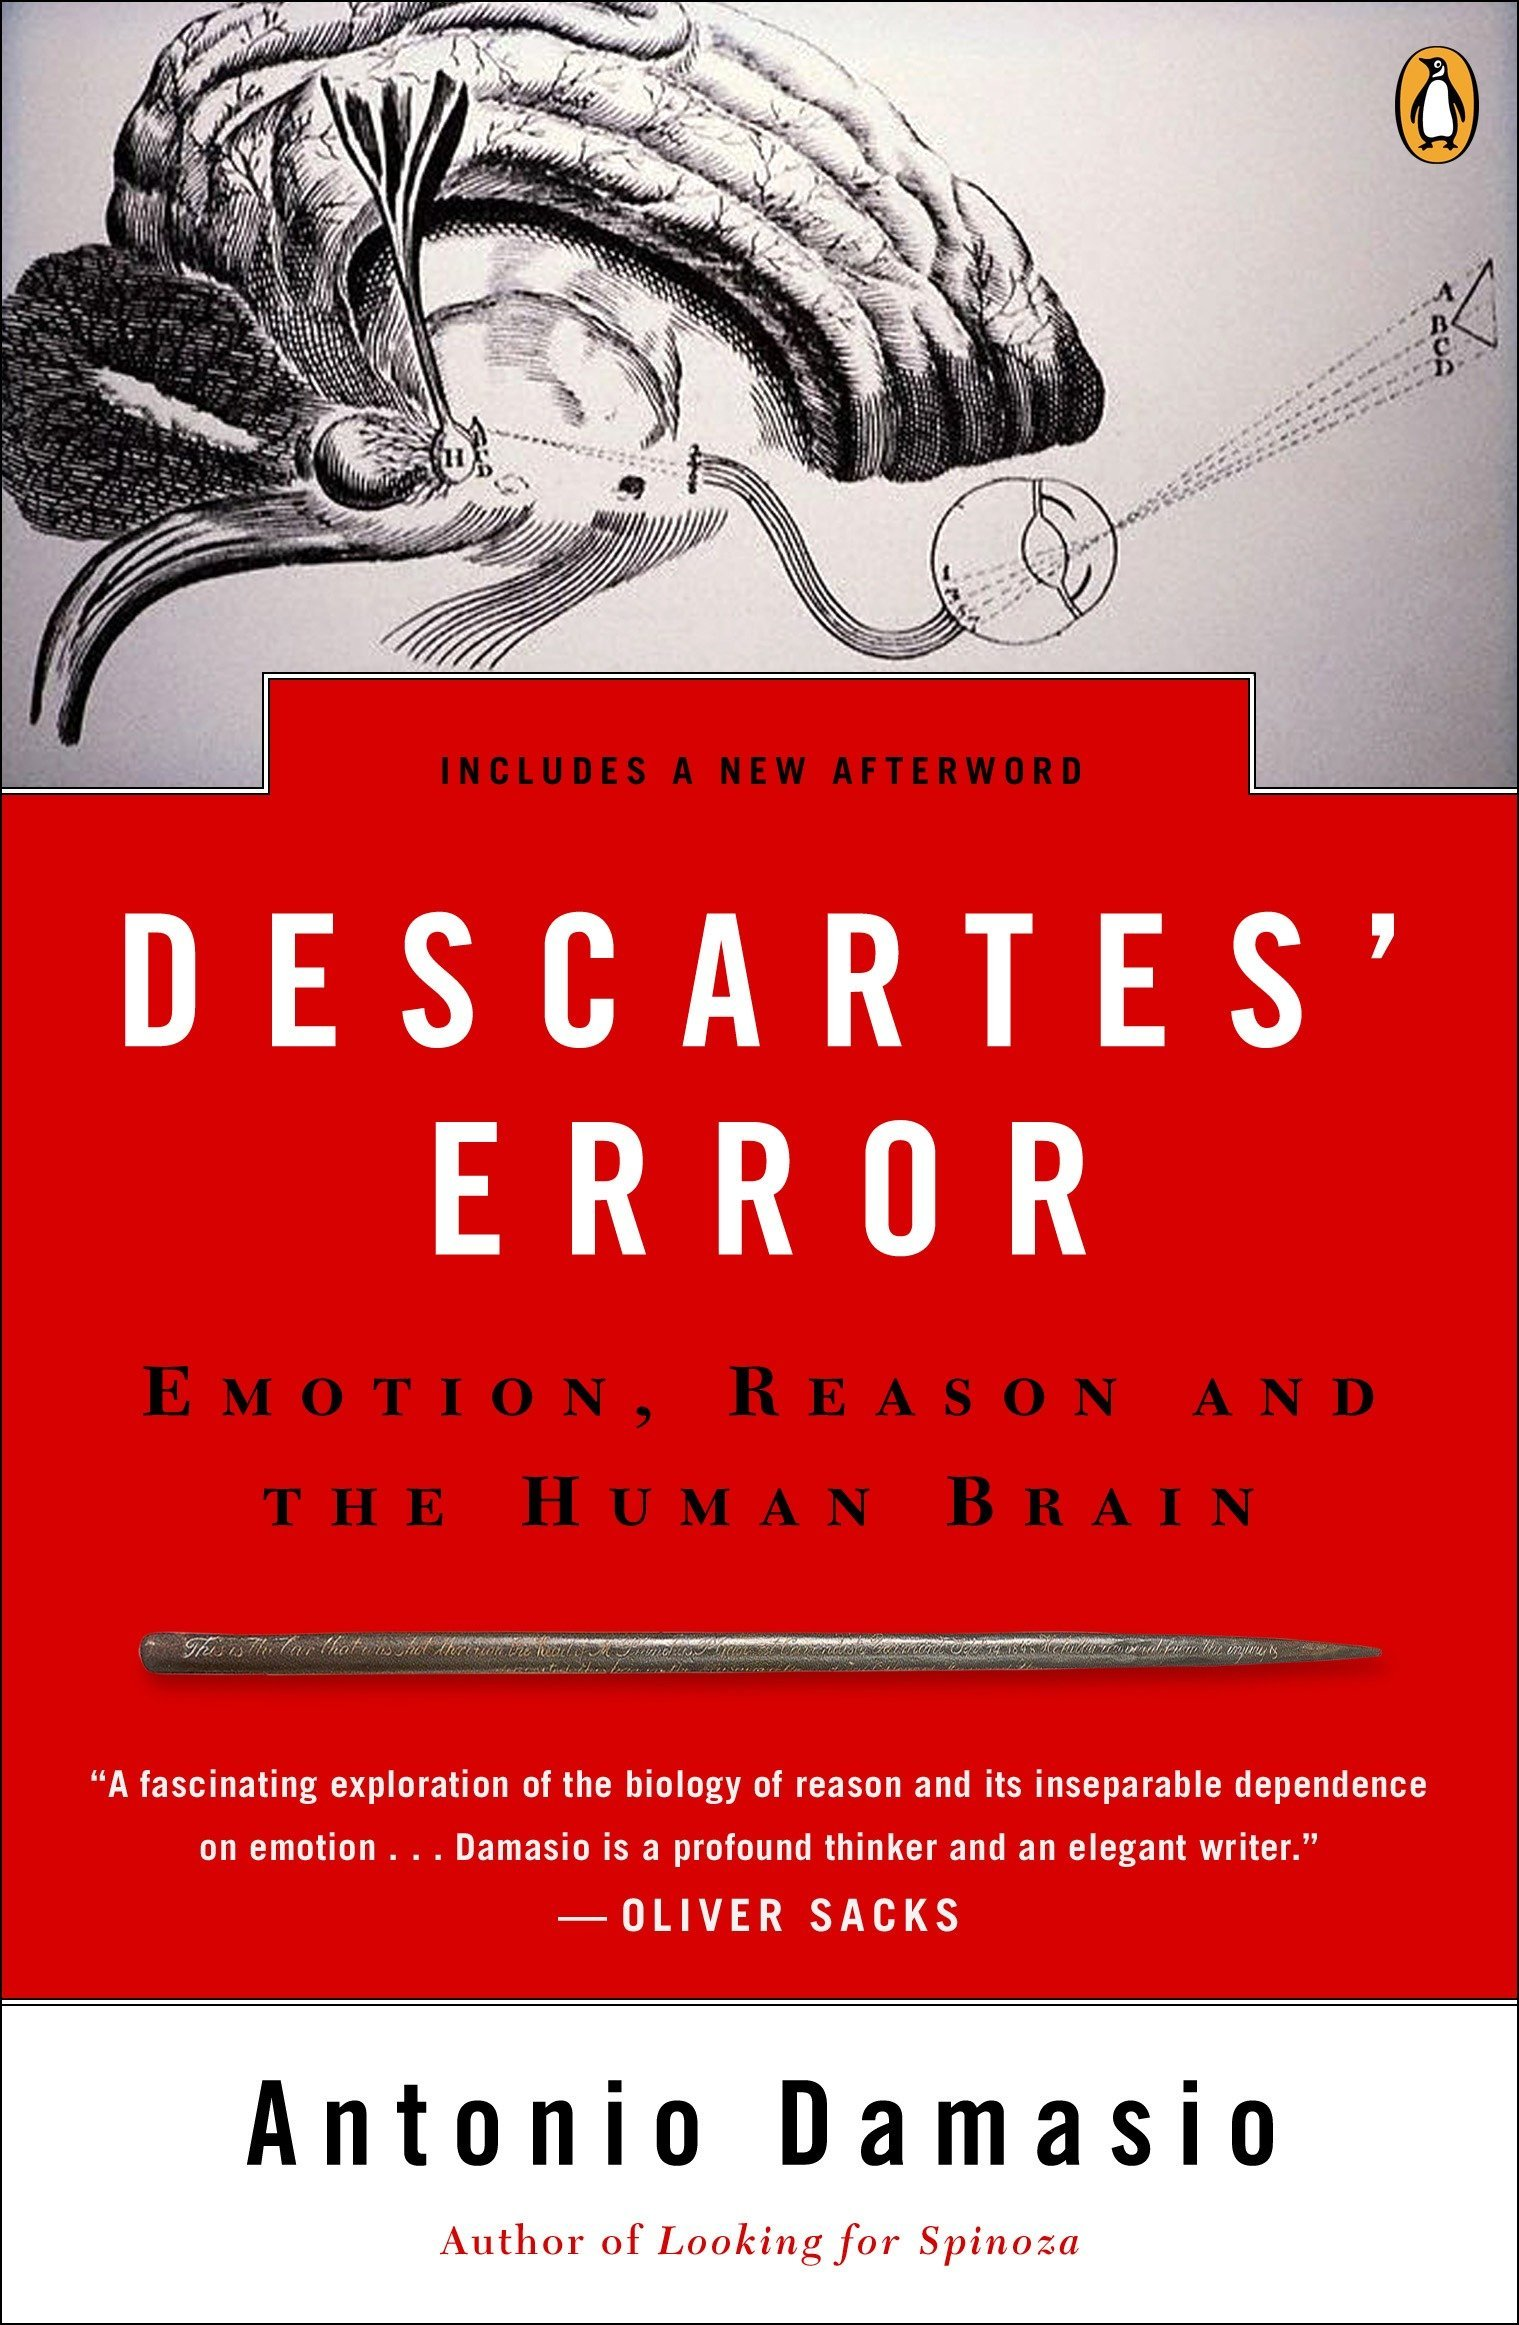 Descartes Error by Antonia Demasio